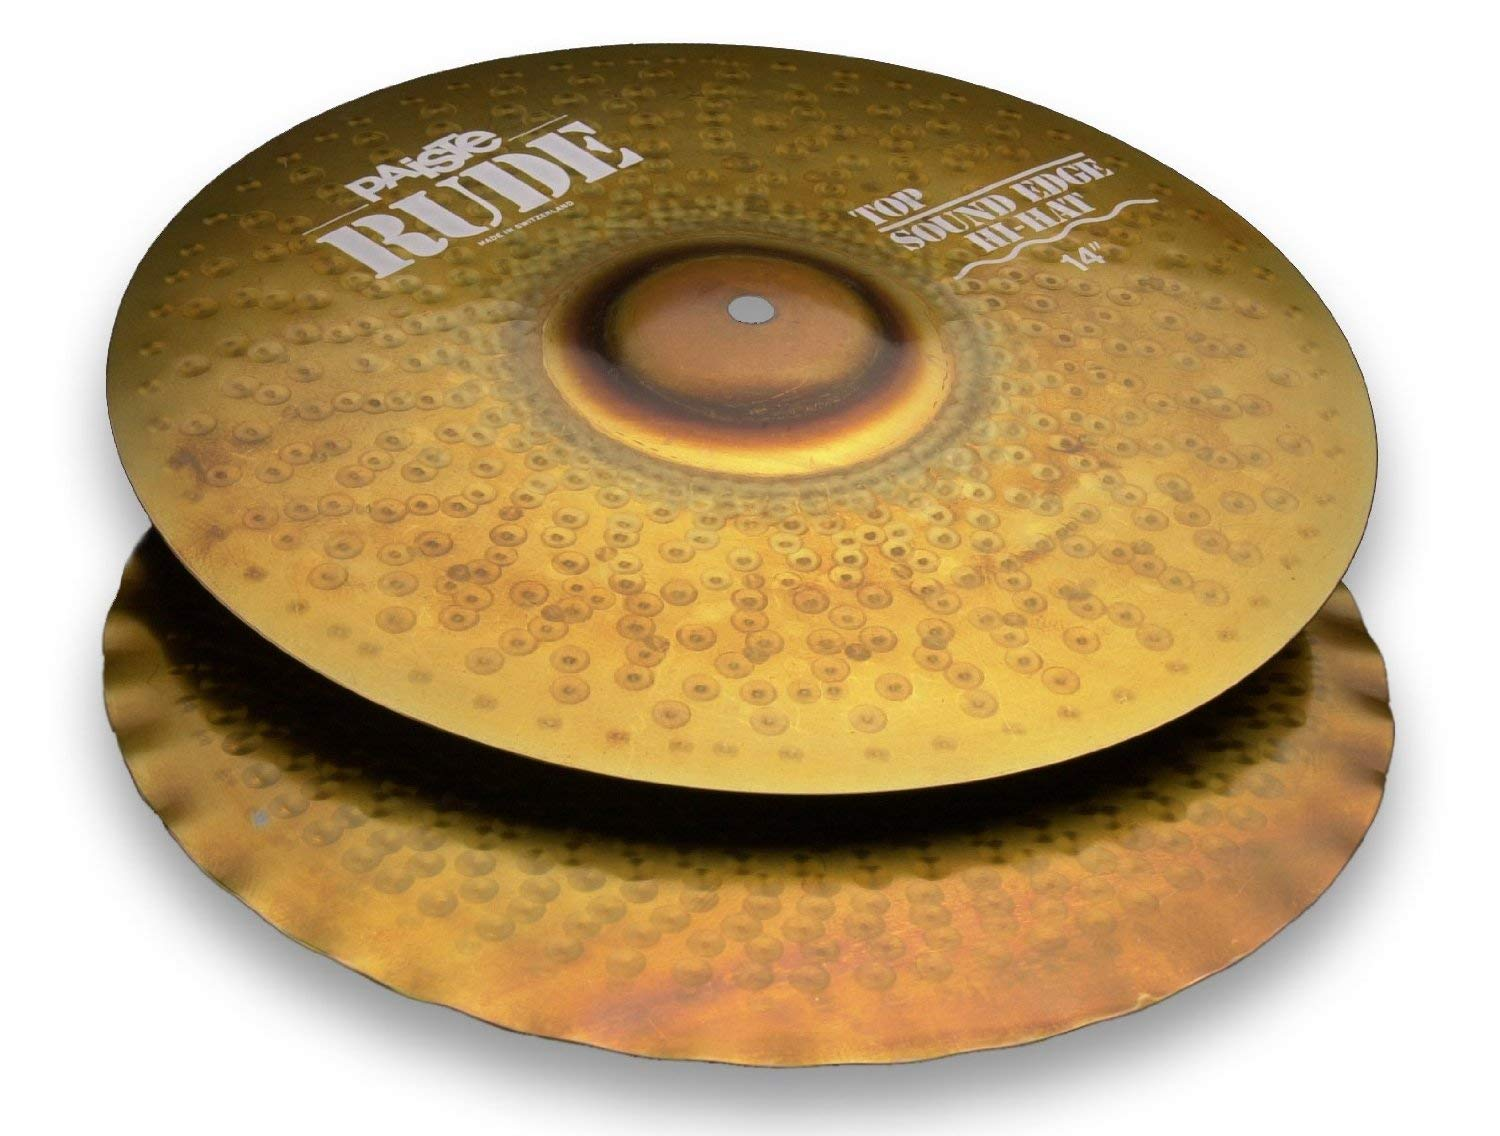 Paiste Rude Classic Sound Edge Hi-Hat Top 14''Factory Package w/Free Shipping NEW by Paiste